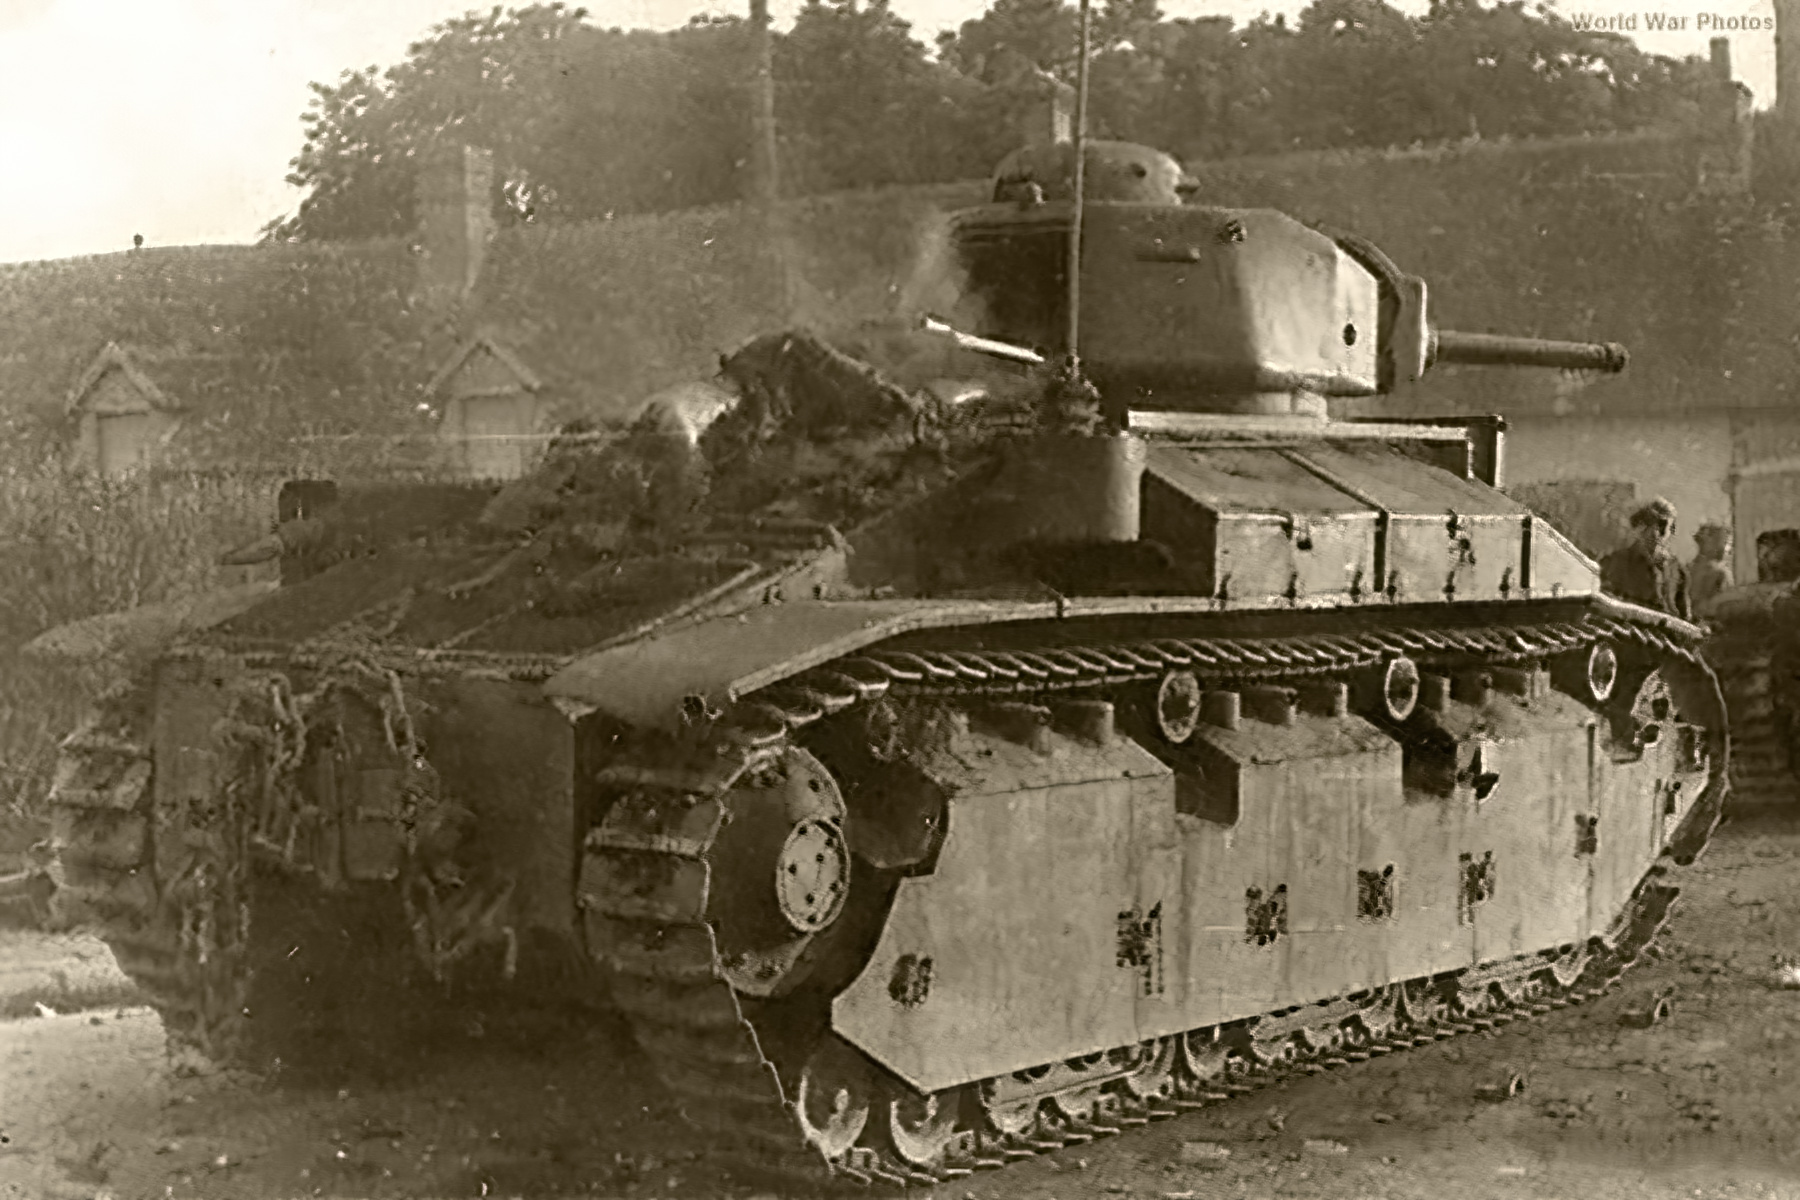 French Army Renault D2 tank abandoned battle of France 1940 web 01